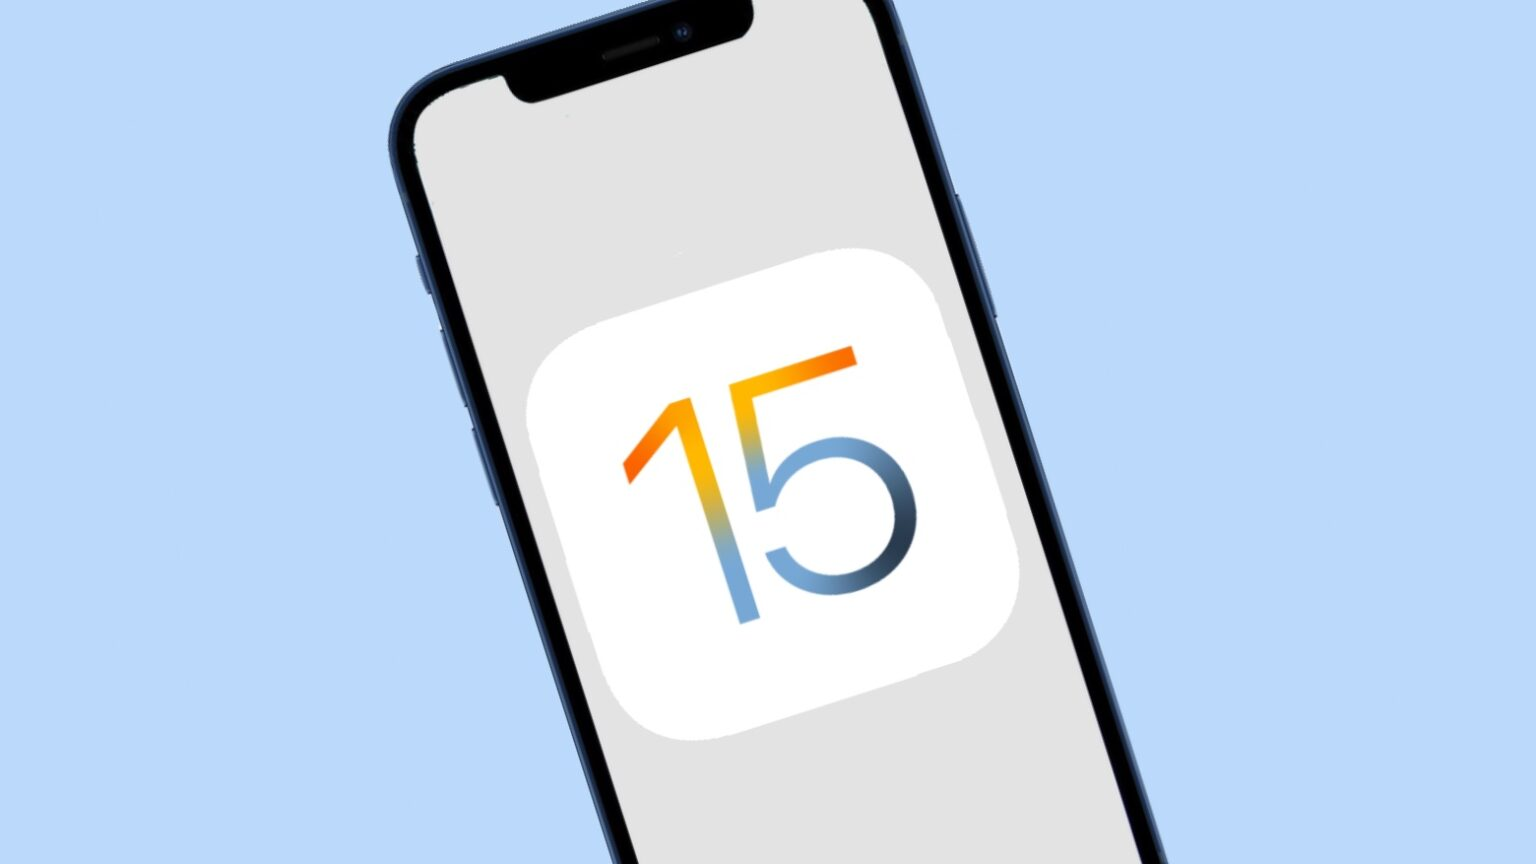 iOS 15 has been replaced by iOS 15.0.1.